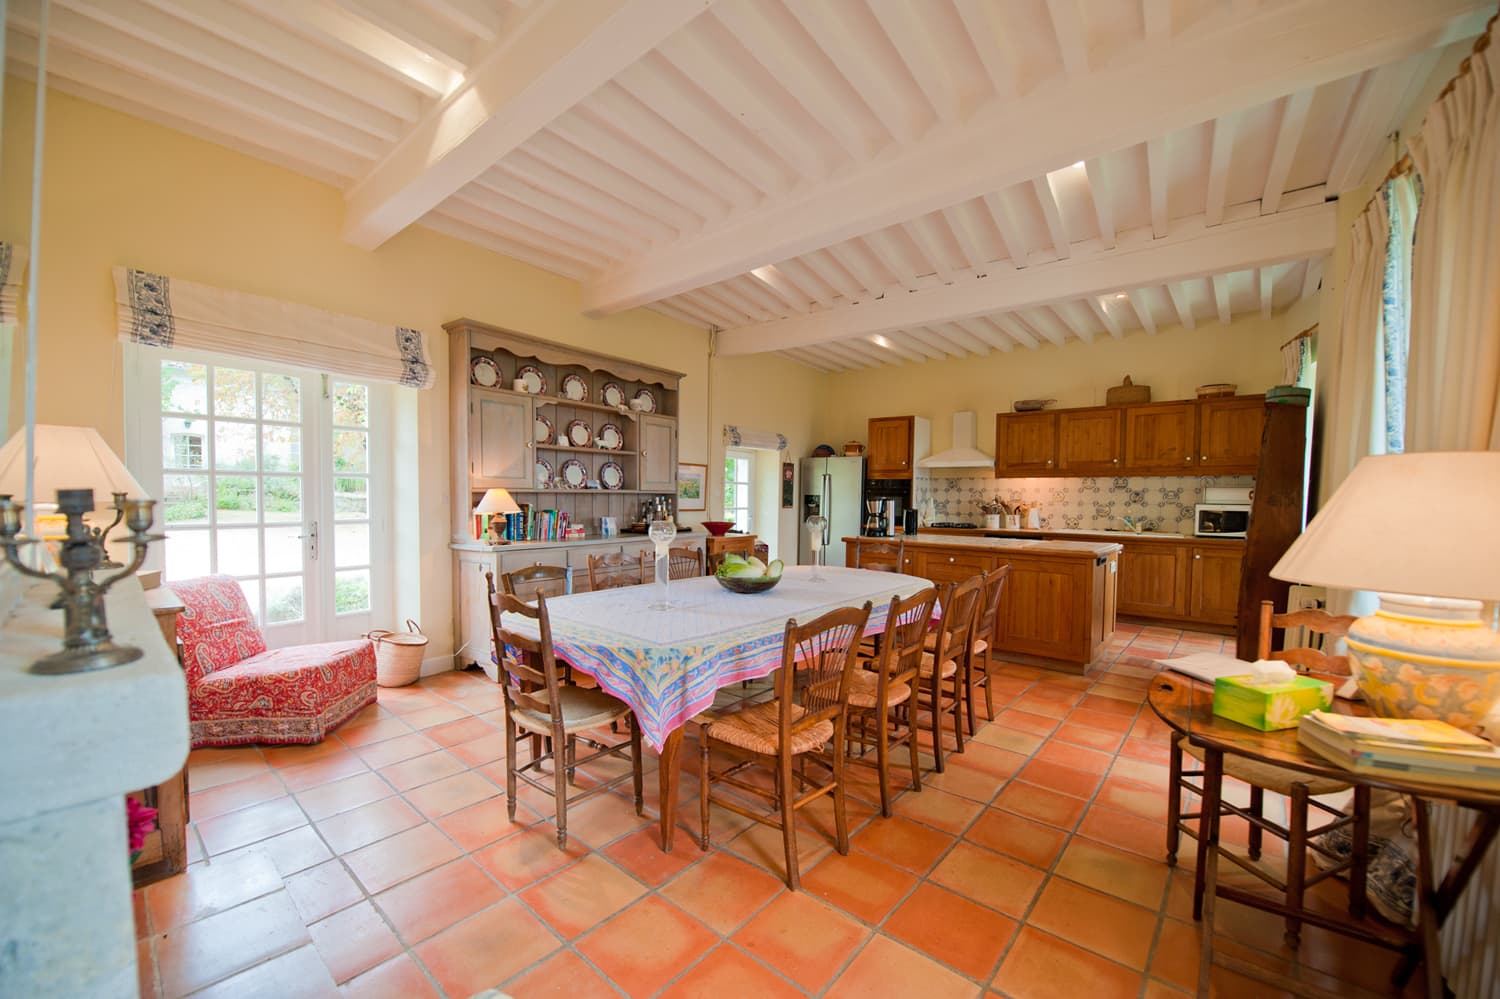 Dining room and kitchen in South West France holiday home